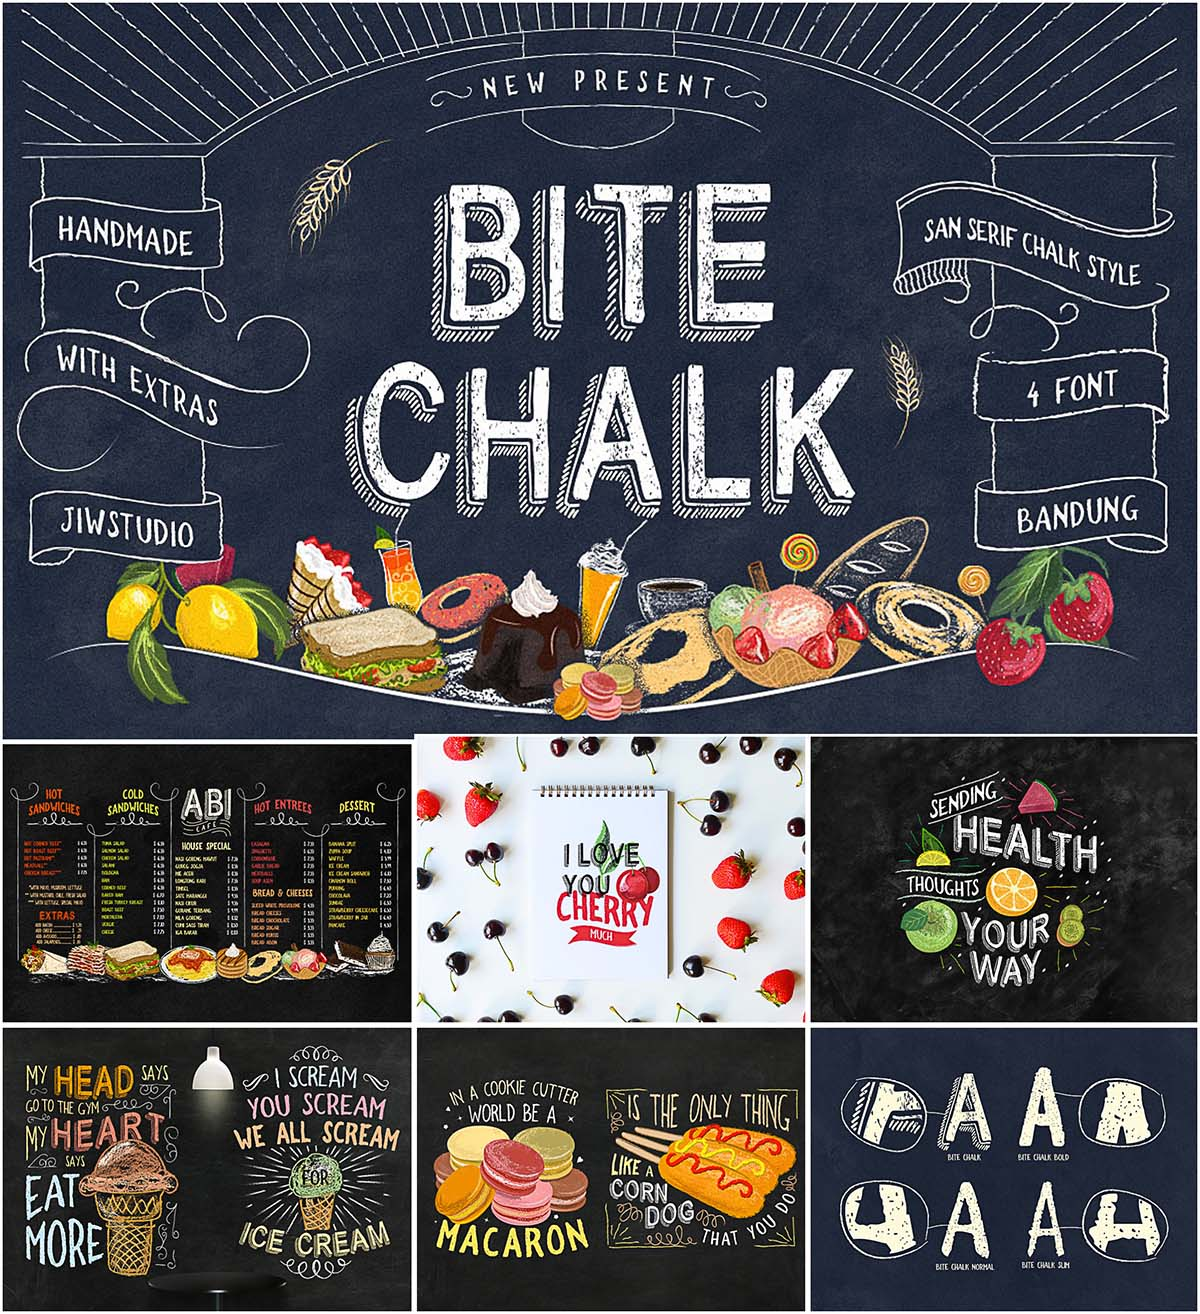 Bitechalk typeface with extra